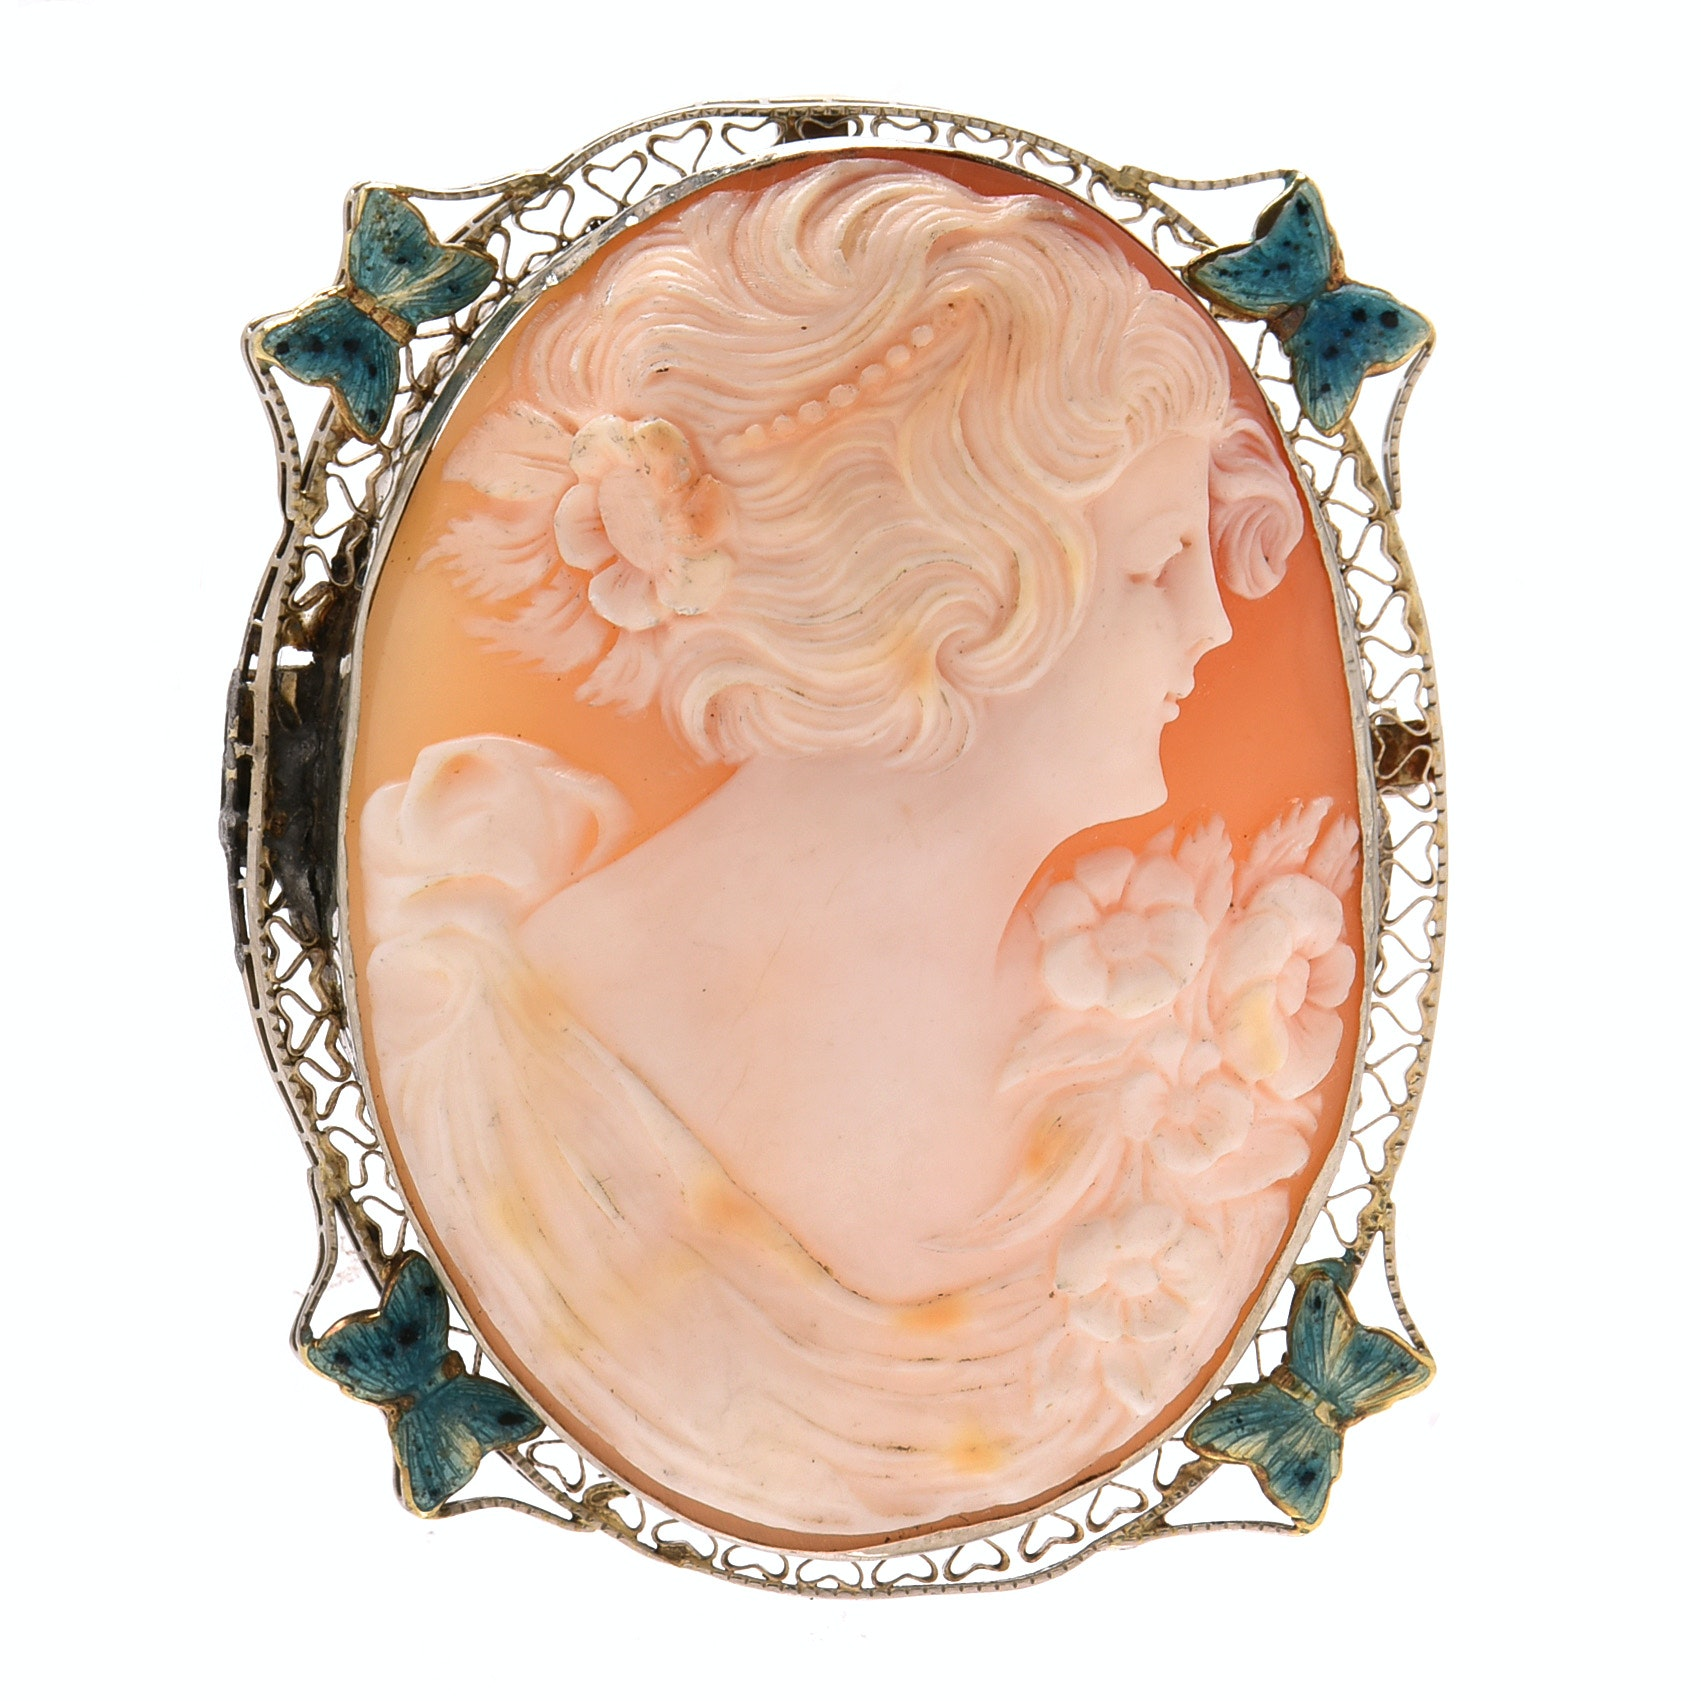 Vintage 14K White Gold Carved Shell Cameo with Enamel Converter Brooch